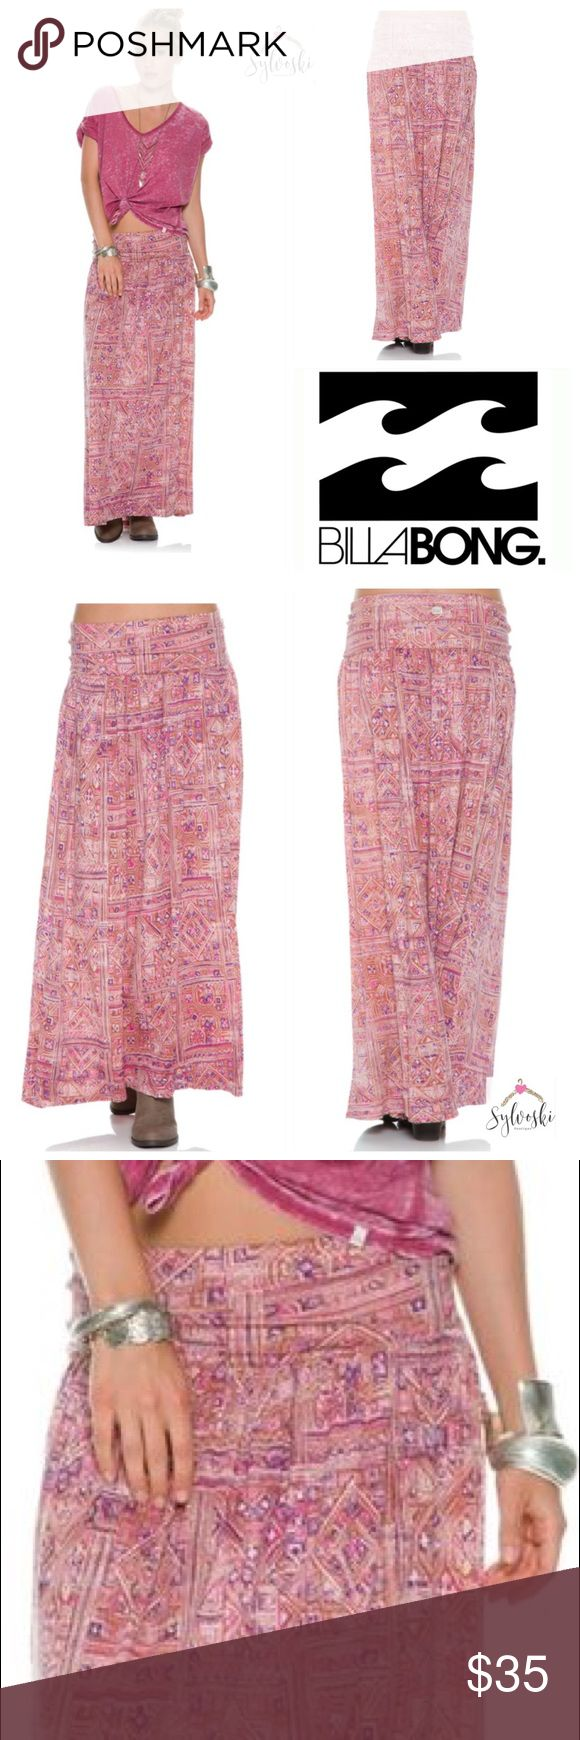 🆕BILLABONG HOW SINCERE MAXI SKIRT * Knit maxi skirt.  * Wide elastic waistband.  * Light pleating.  * Slight high low hemline.  * Allover print.  * 100% Viscose.  * Hand wash.  * Imported. Billabong Skirts Maxi